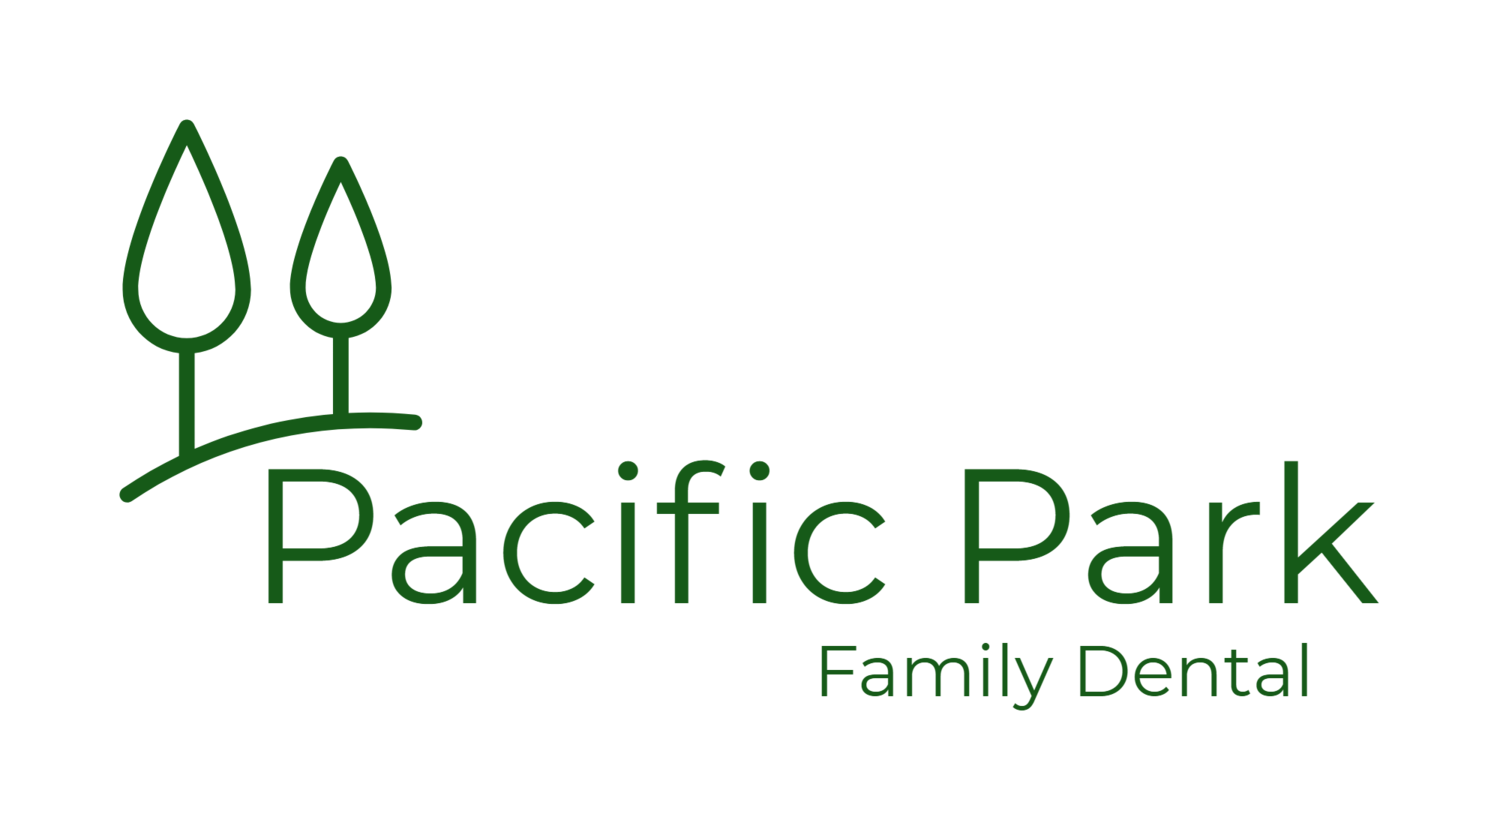 Pacific Park Family Dental